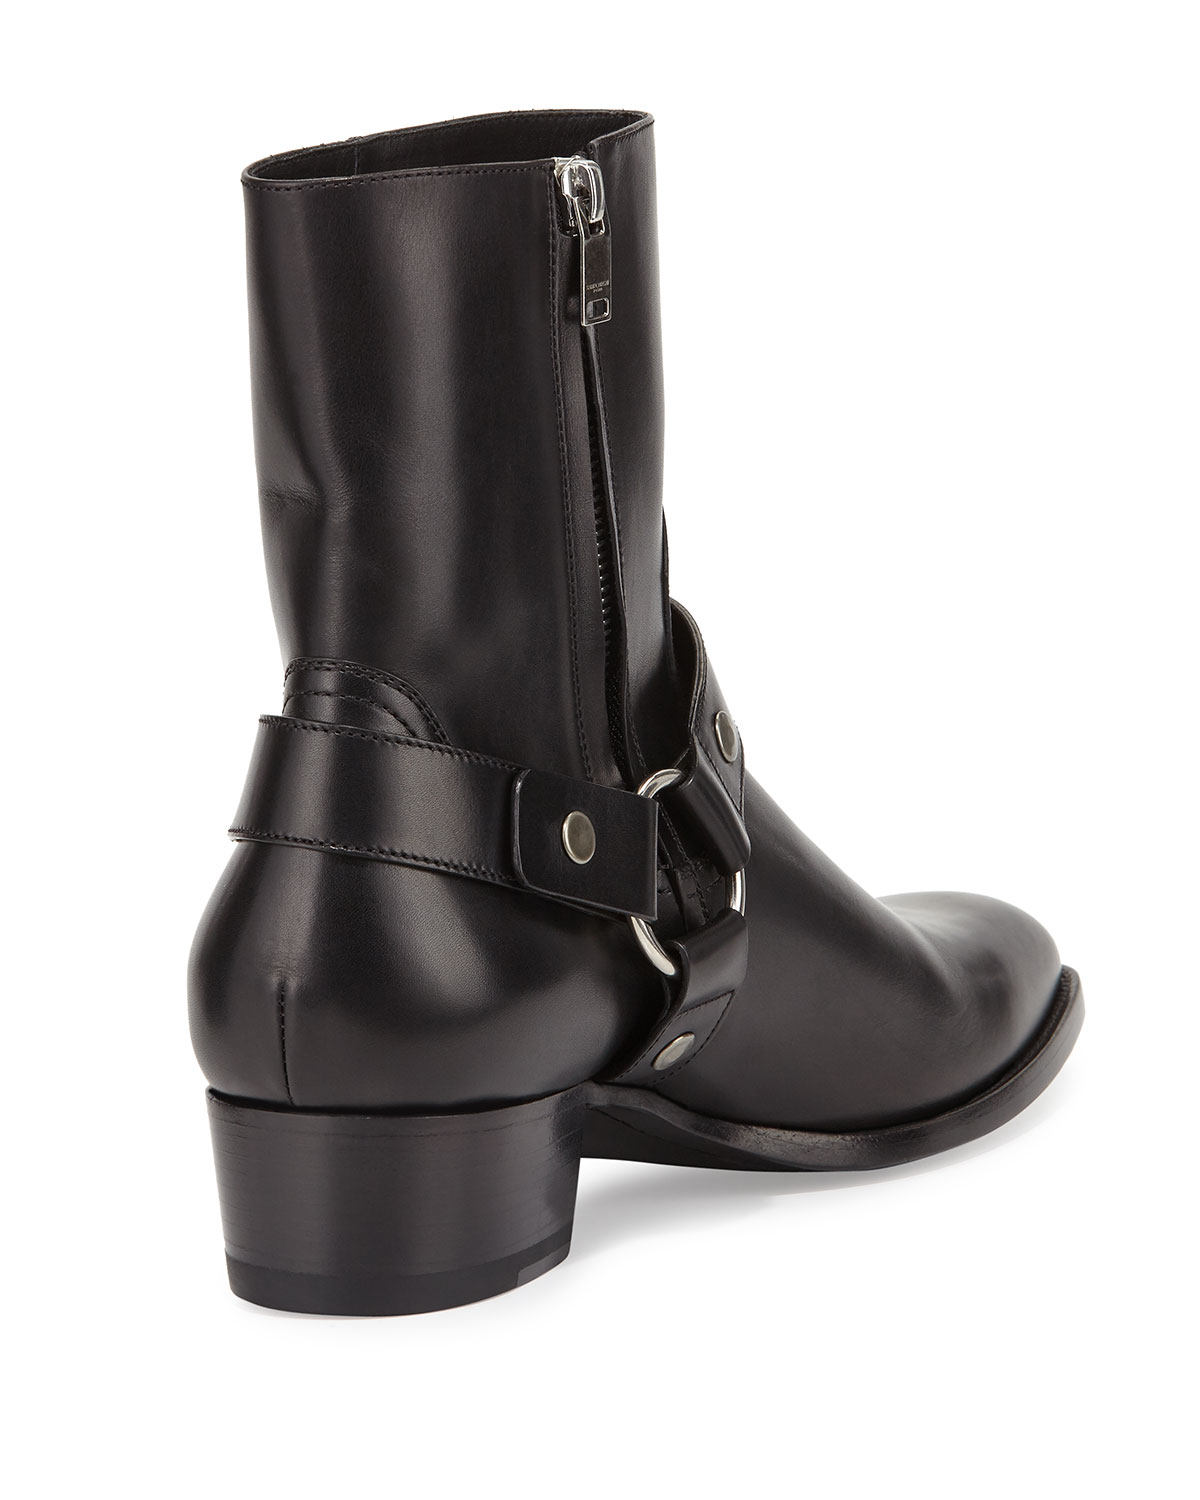 Saint Laurent Leather Wyatt Harness Boots in . zdVyJJd1kG